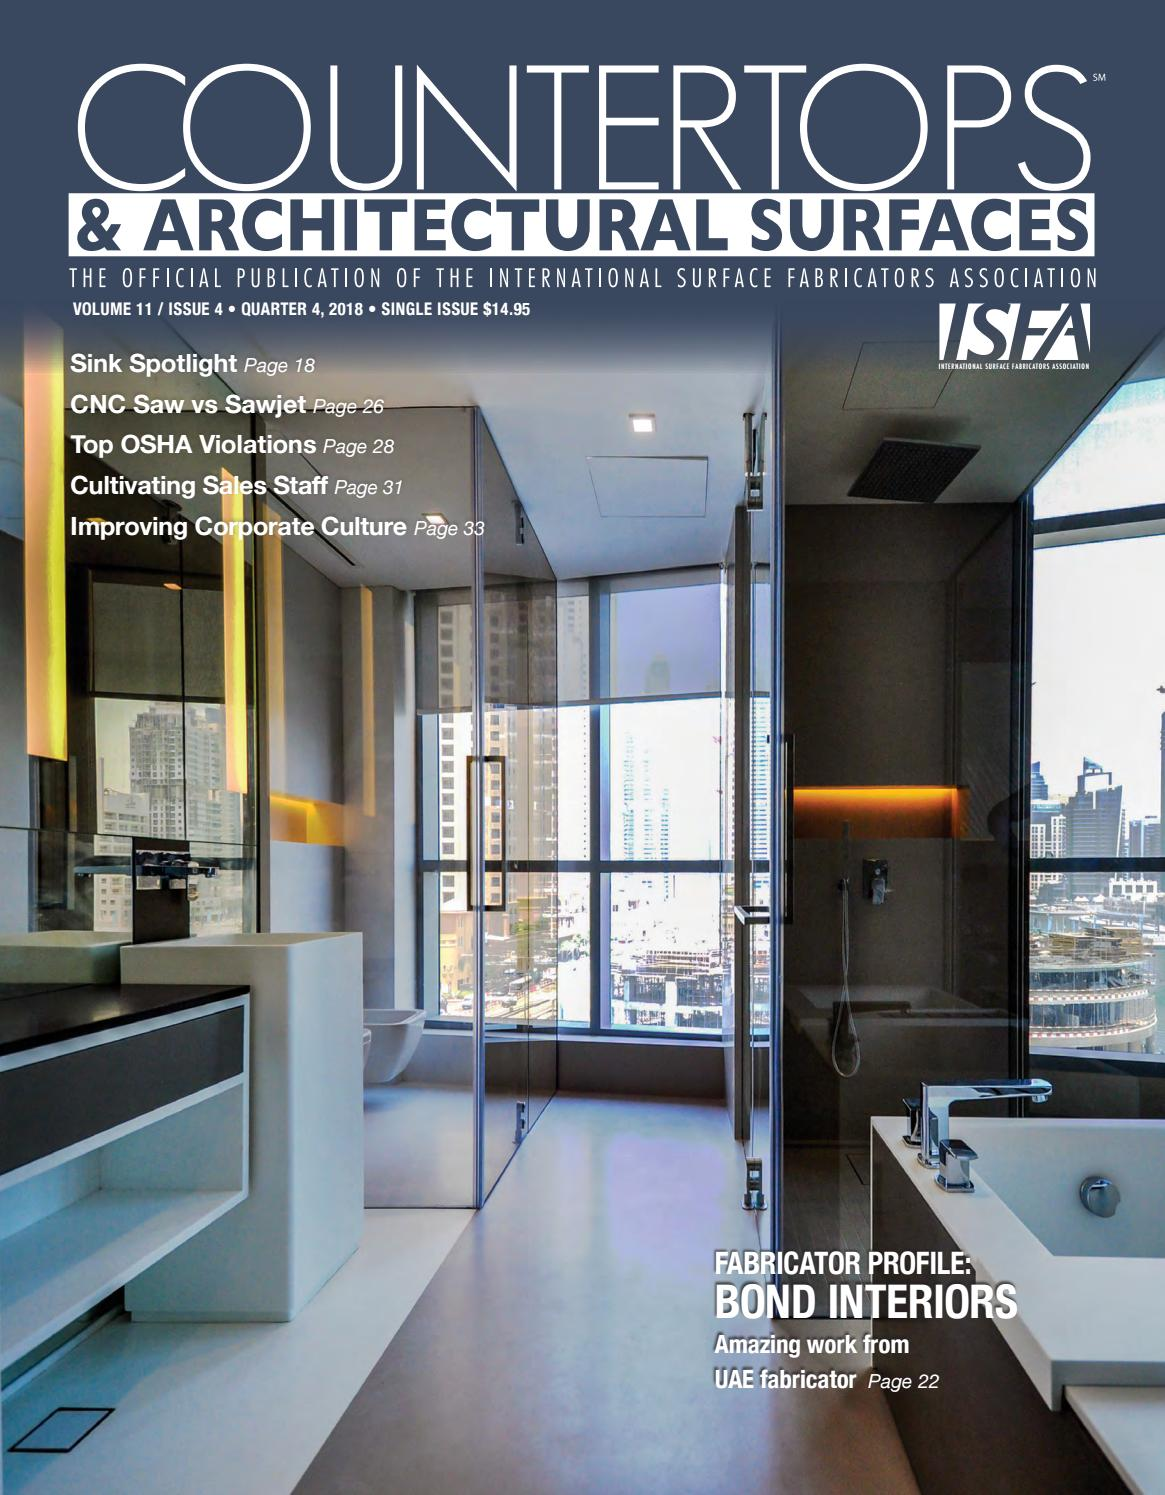 Isfa S Countertops Architectural Surfaces Vol 11 Issue 4 Q4 2018 By Isfa Issuu